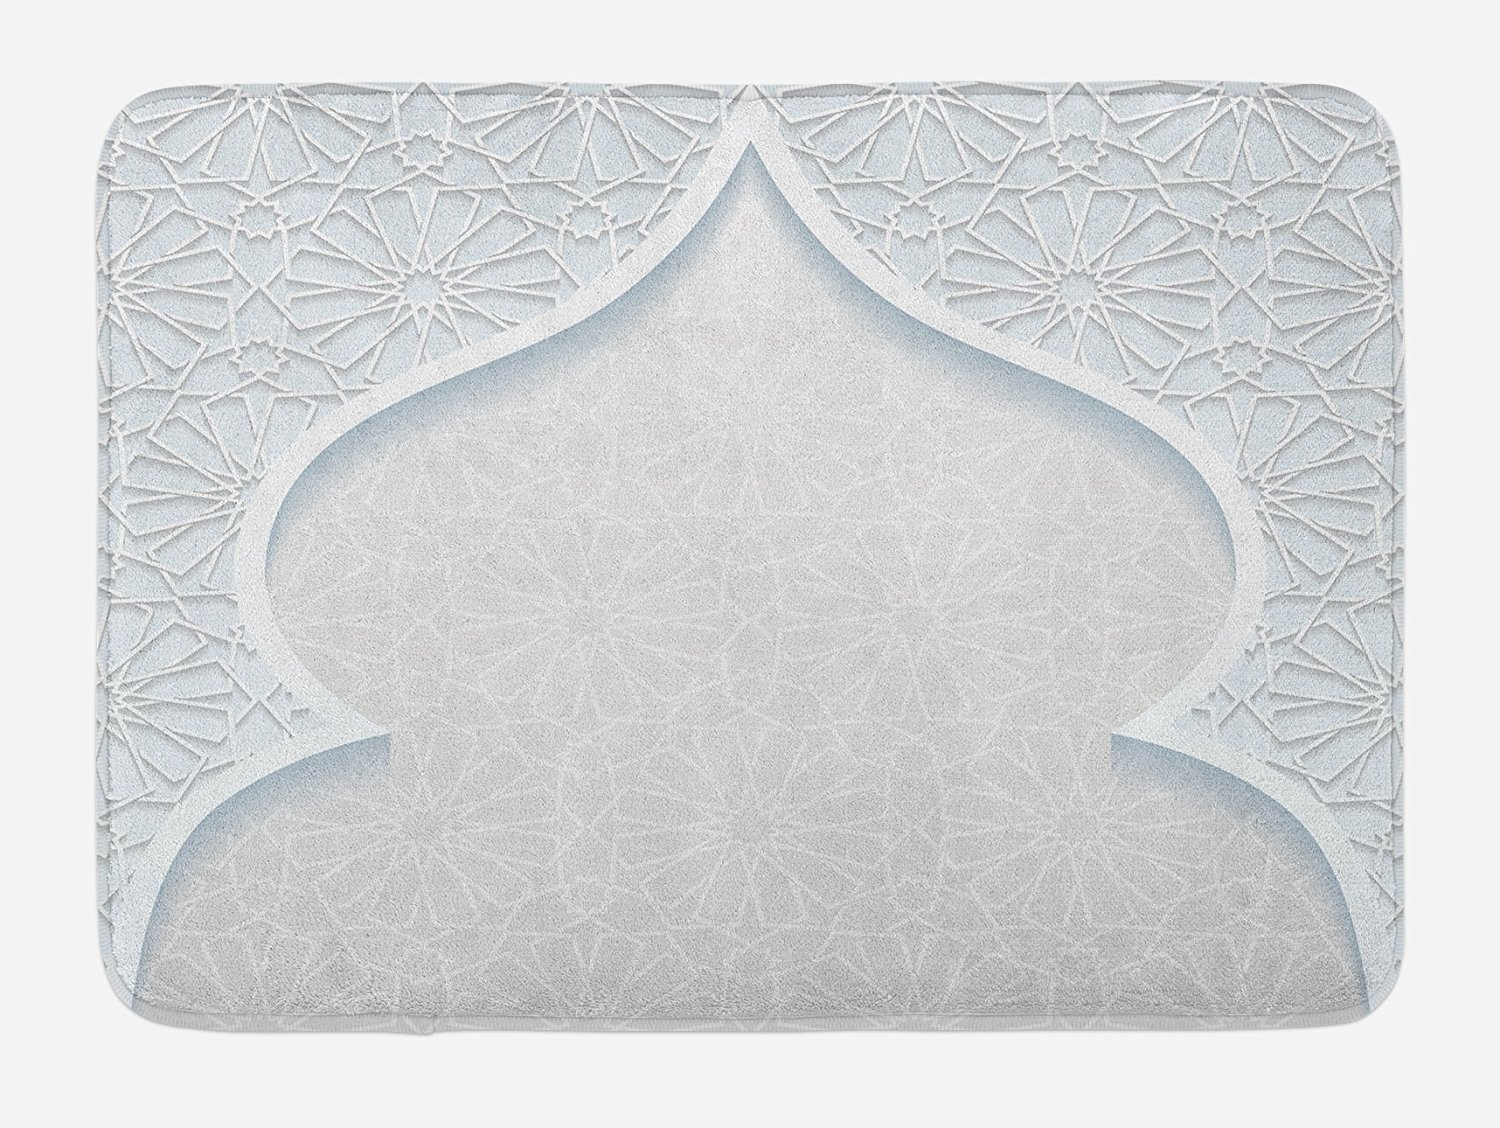 Ethnic Bath Mat by Lunarable, Ornamental Moroccan Mosque Pattern Retro Middle Eastern Inspired Motifs Image Print, Plush Bathroom Decor Mat with Non Slip Backing, 29.5 W X 17.5 W Inches, Pale Blue